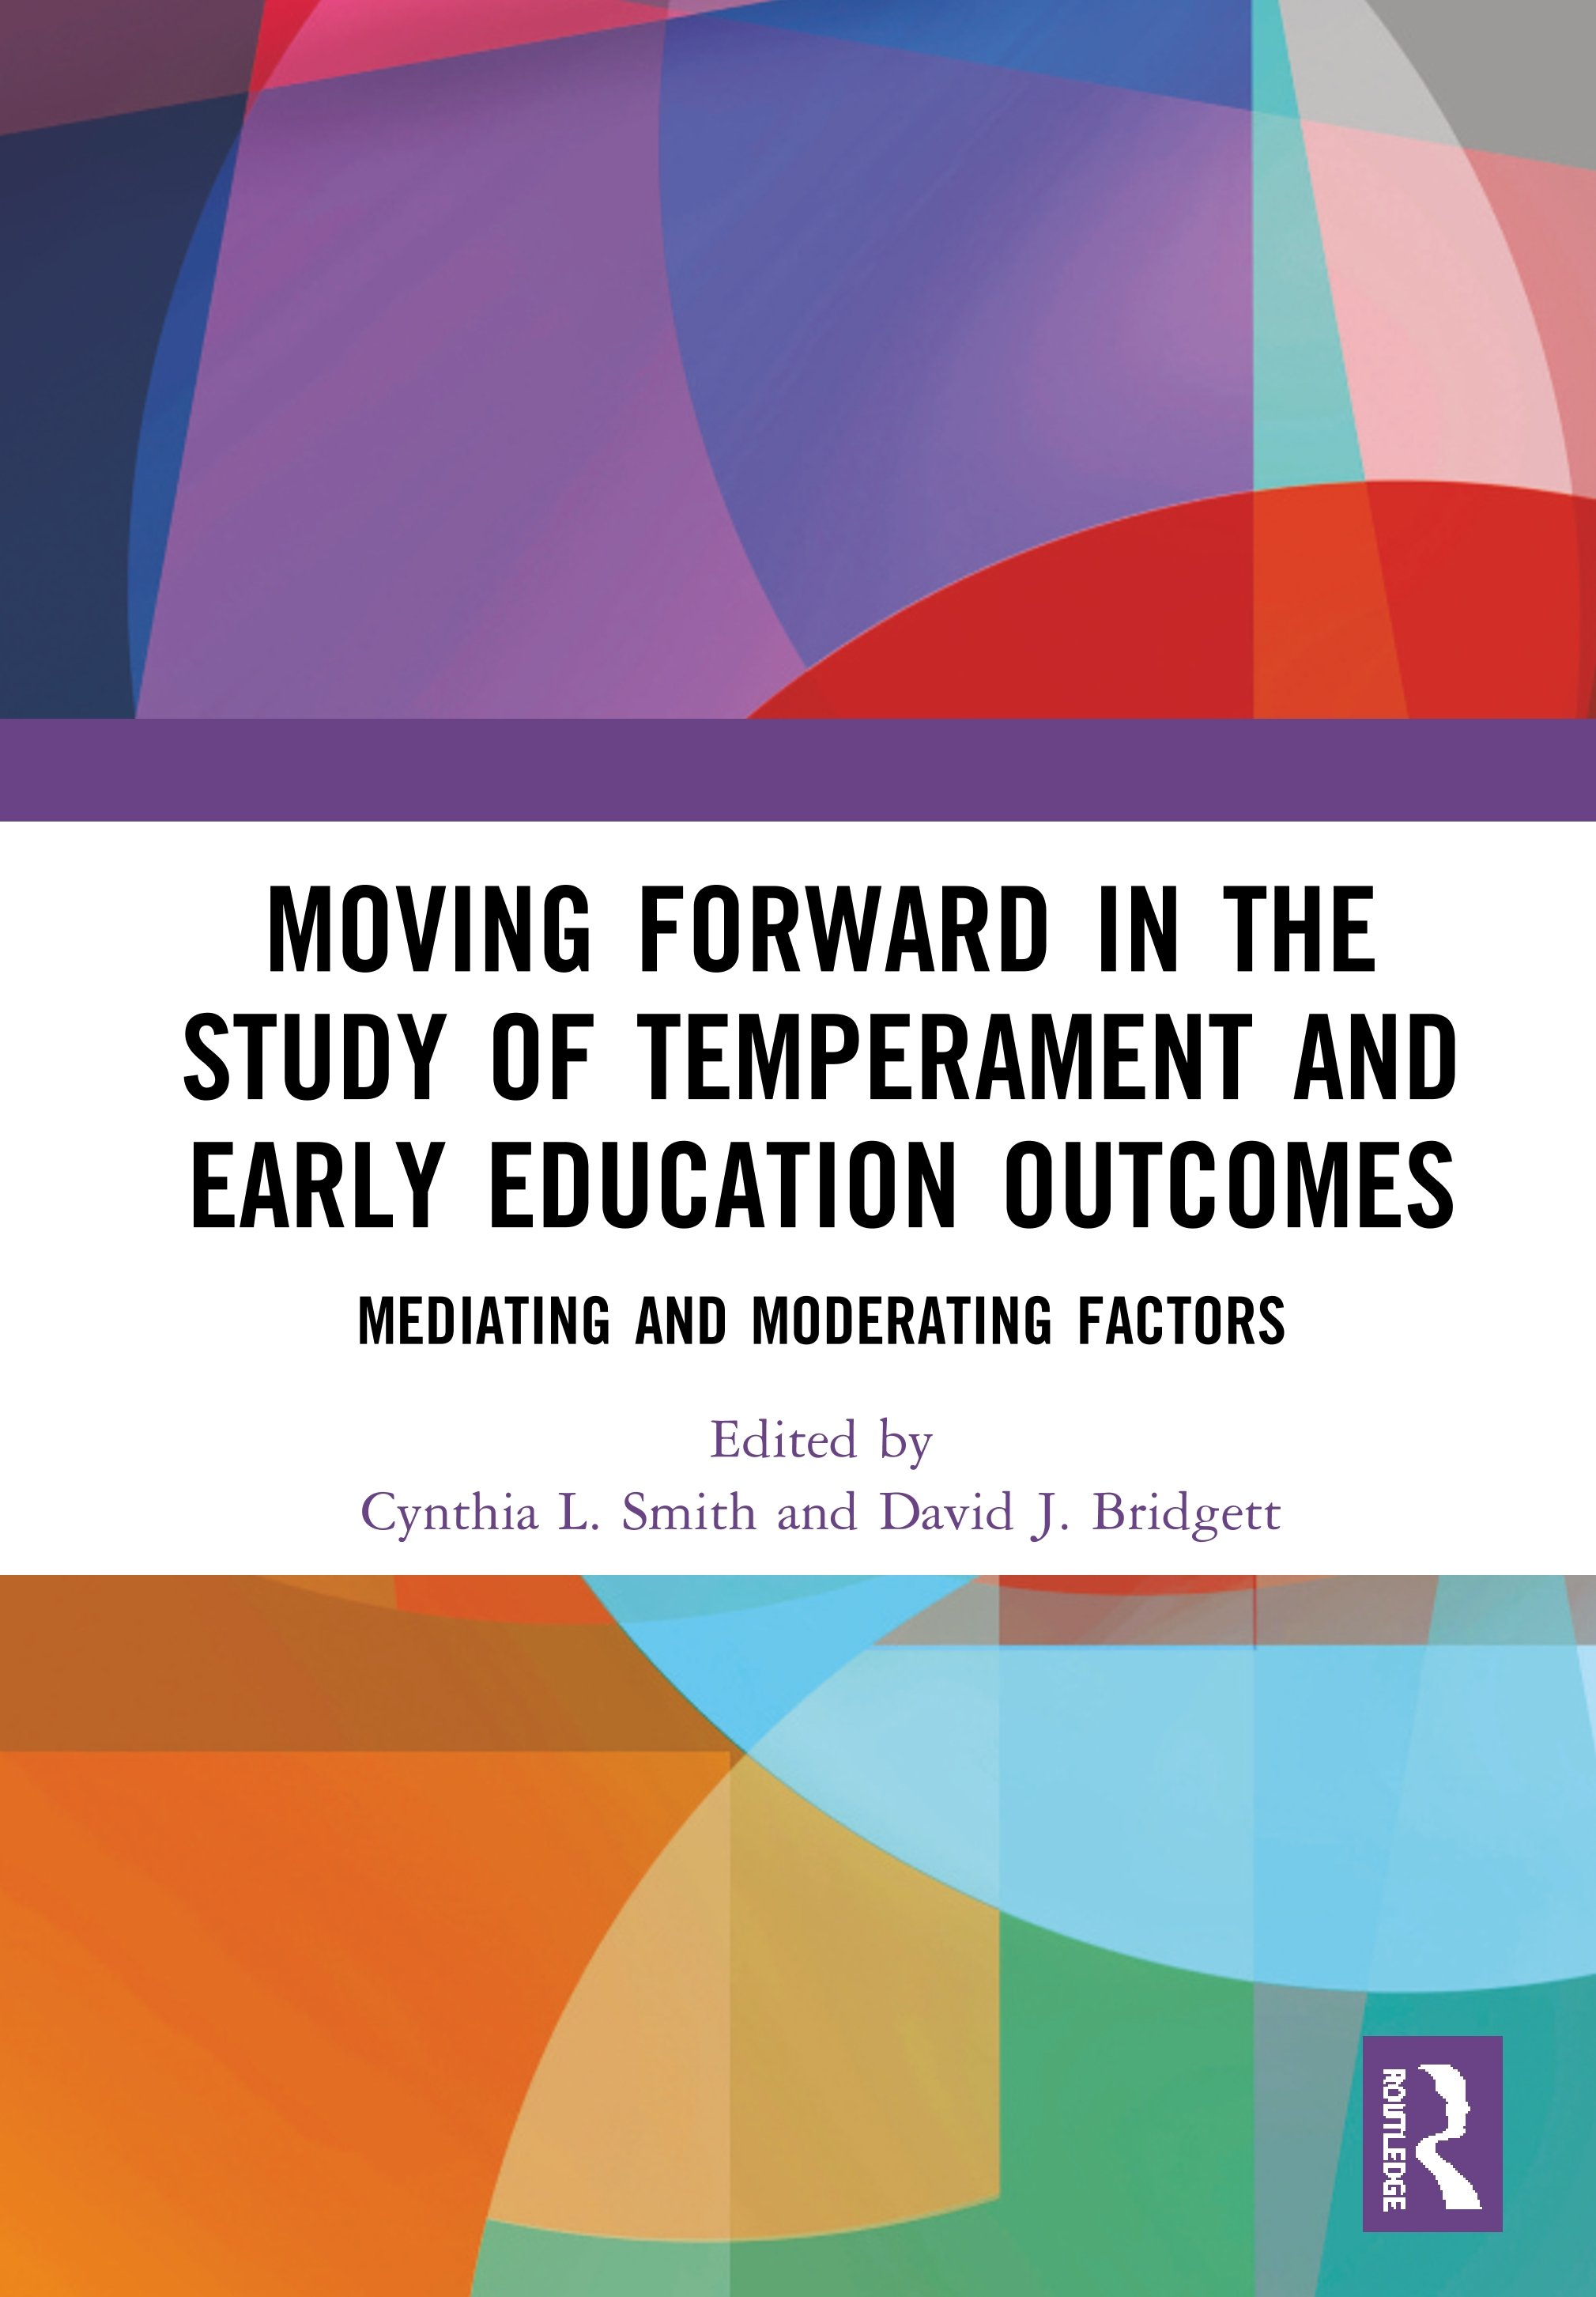 Moving Forward in the Study of Temperament and Early Education Outcomes: Mediating and Moderating Factors book cover